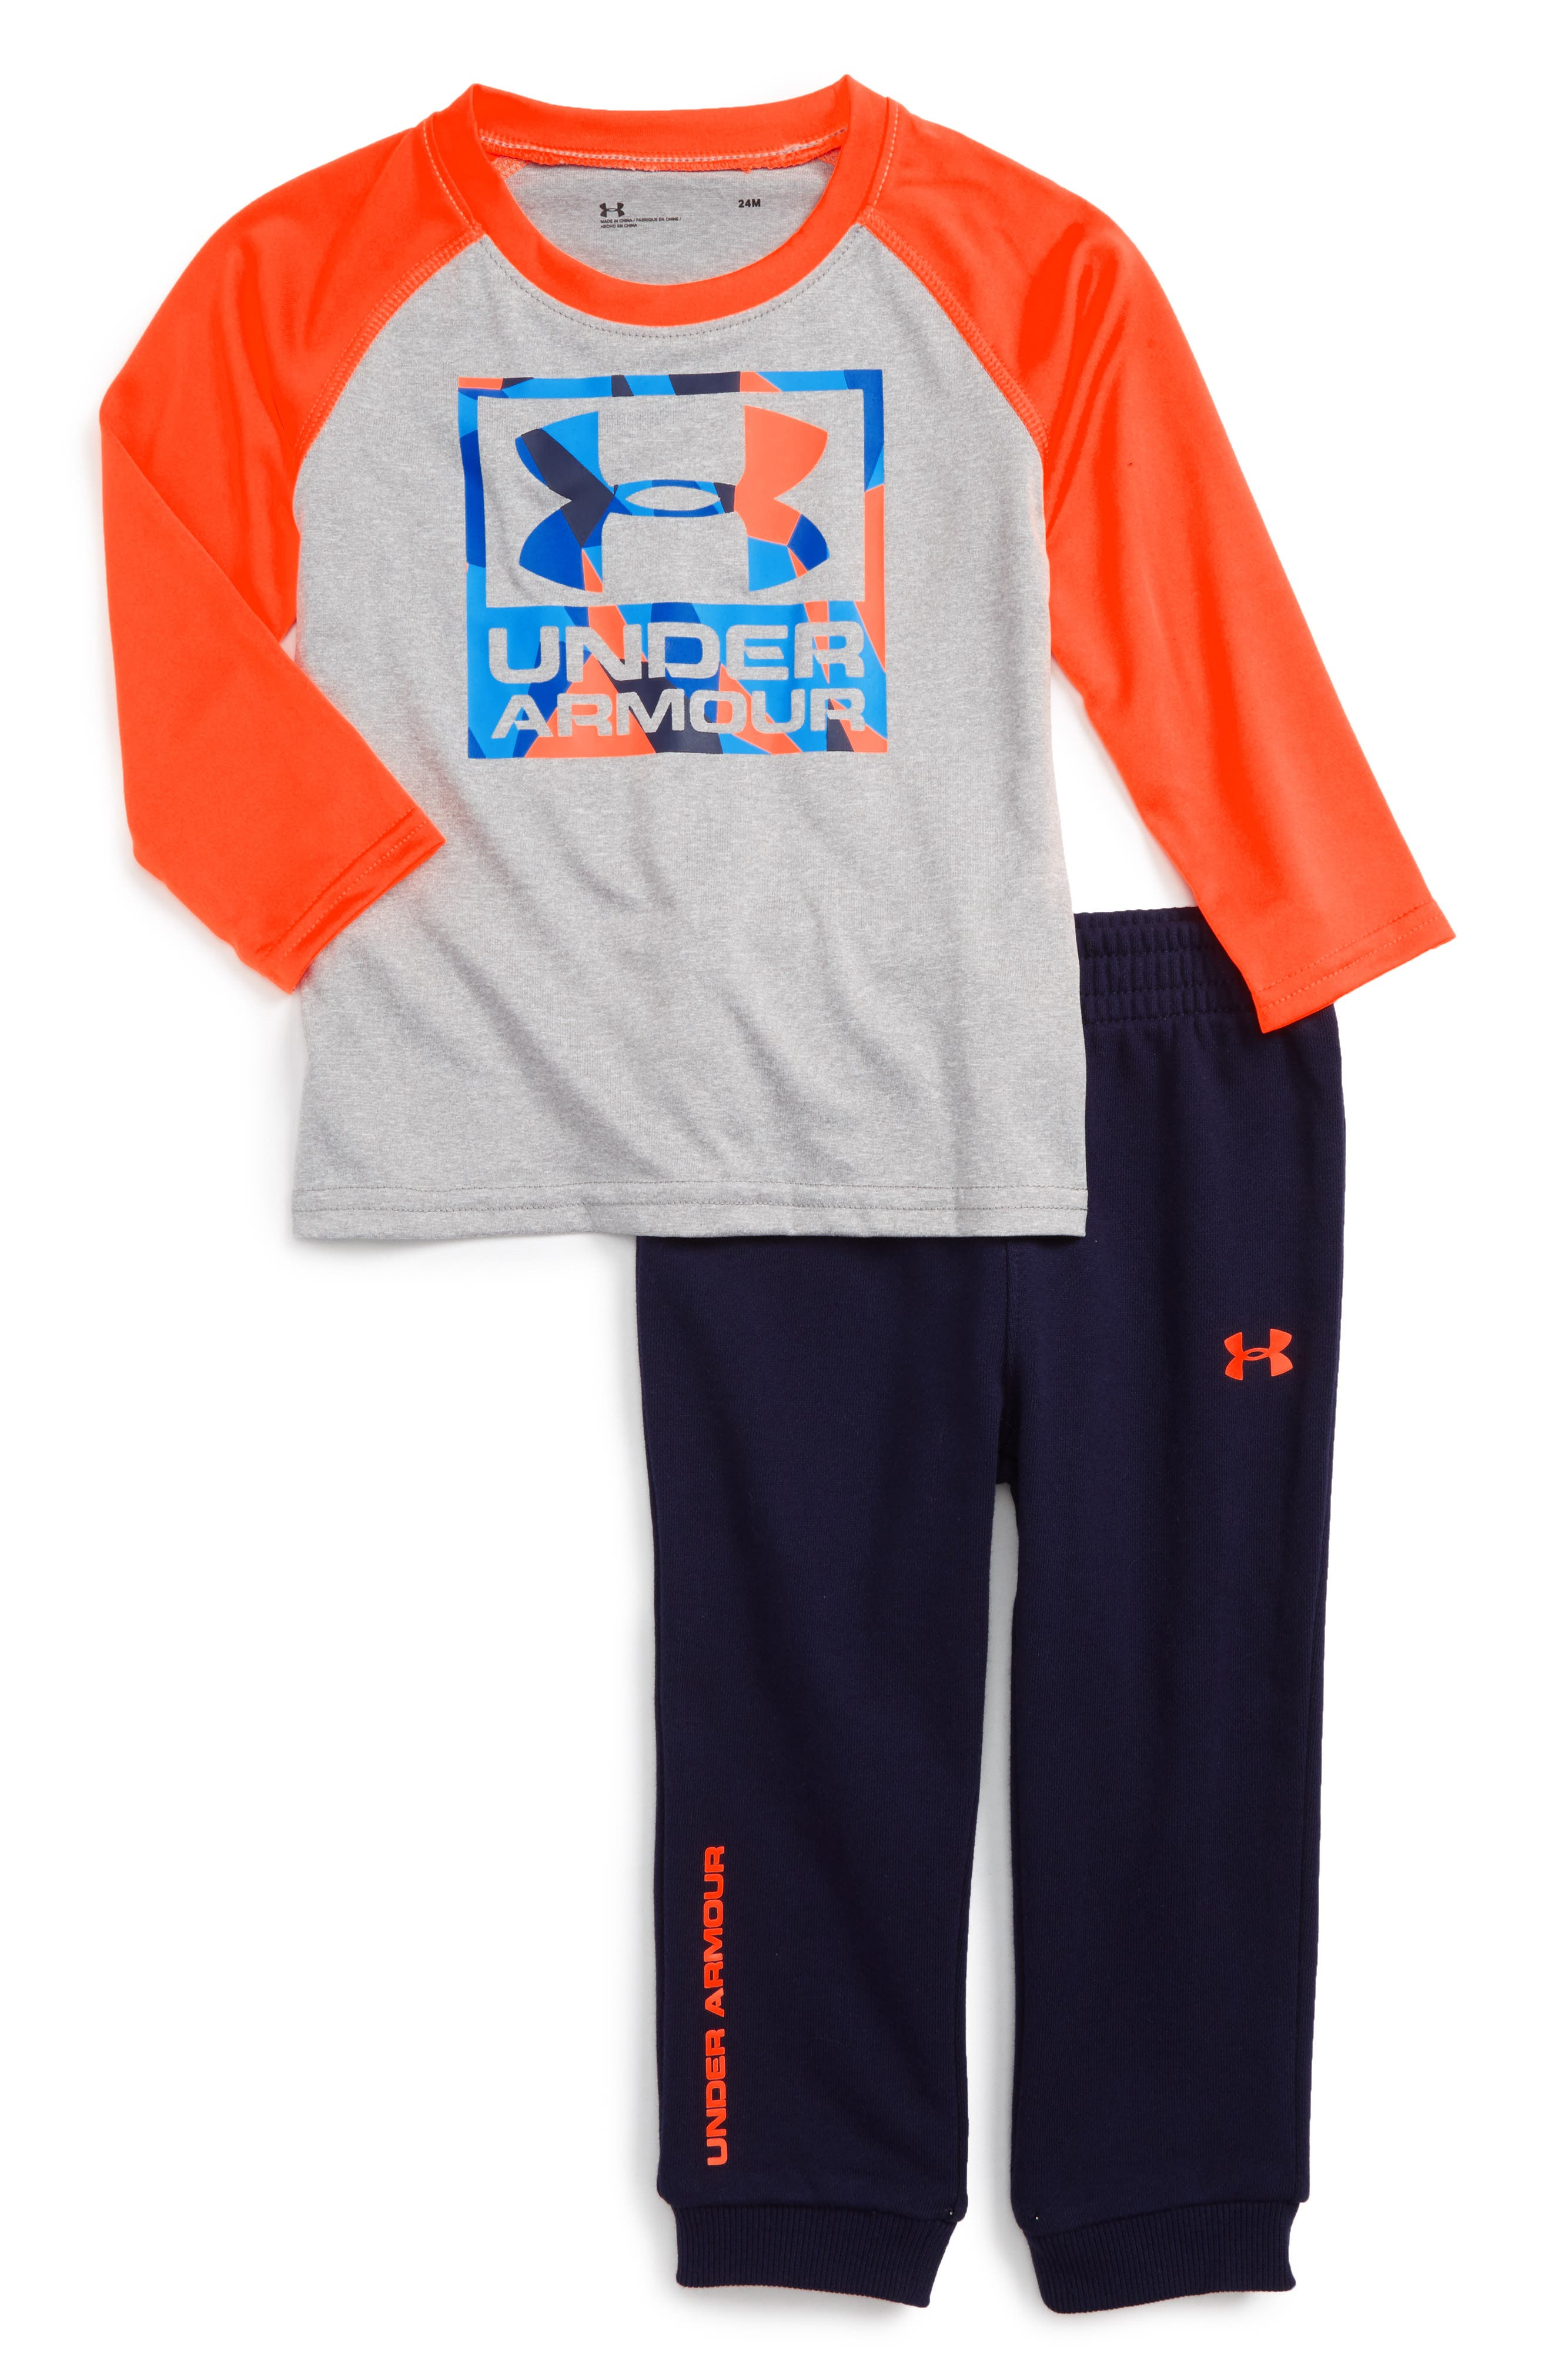 Under Armour Graphic T-Shirt & Track Pants Set (Baby Boys)